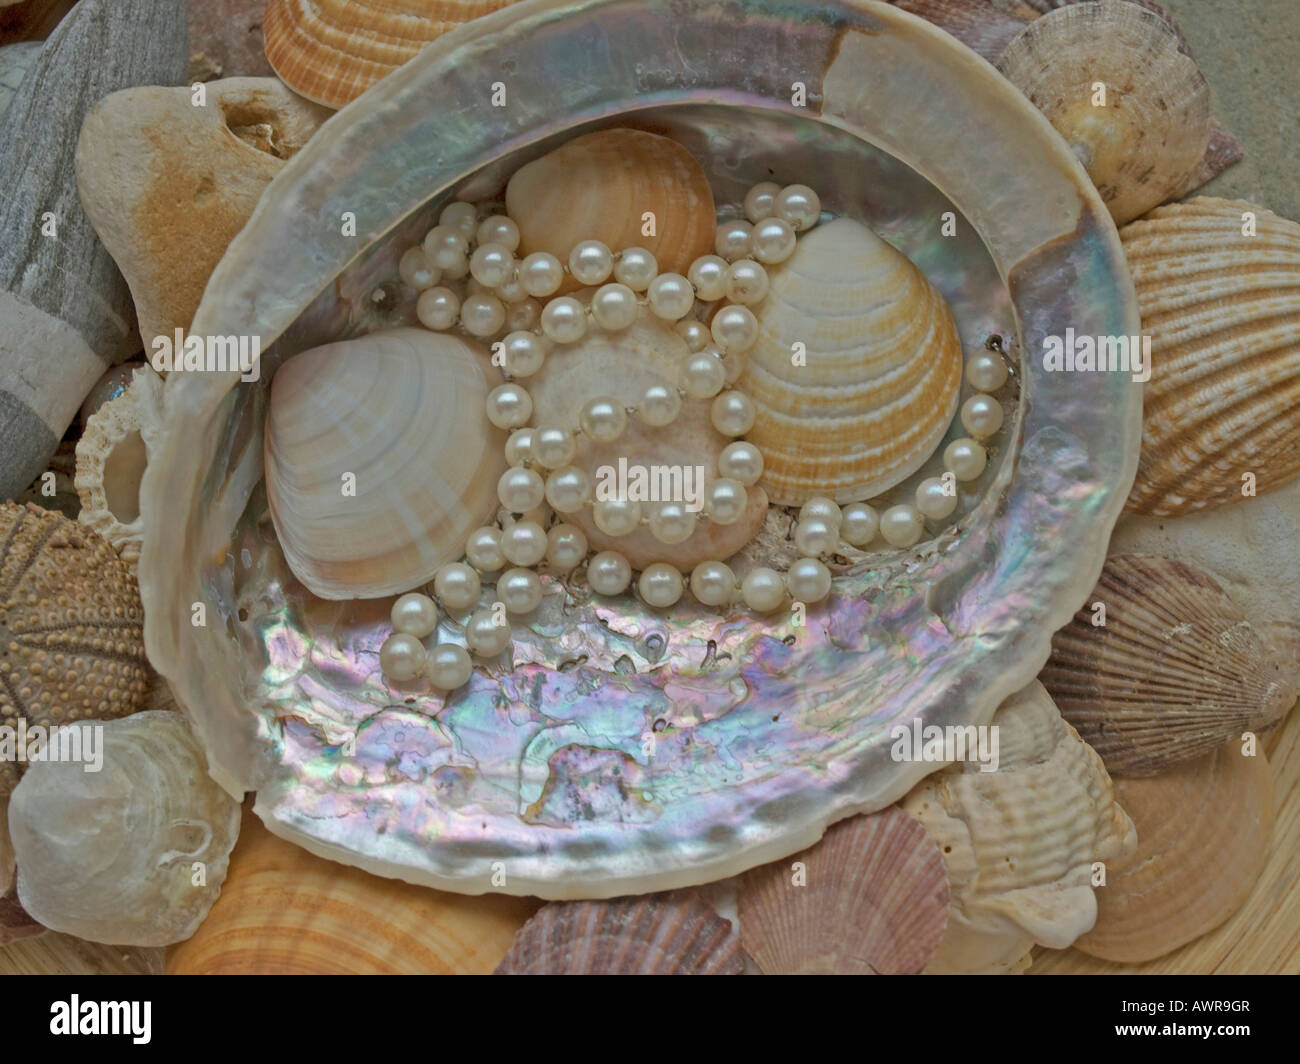 gleaming seashell with a chain of pearls - Stock Image